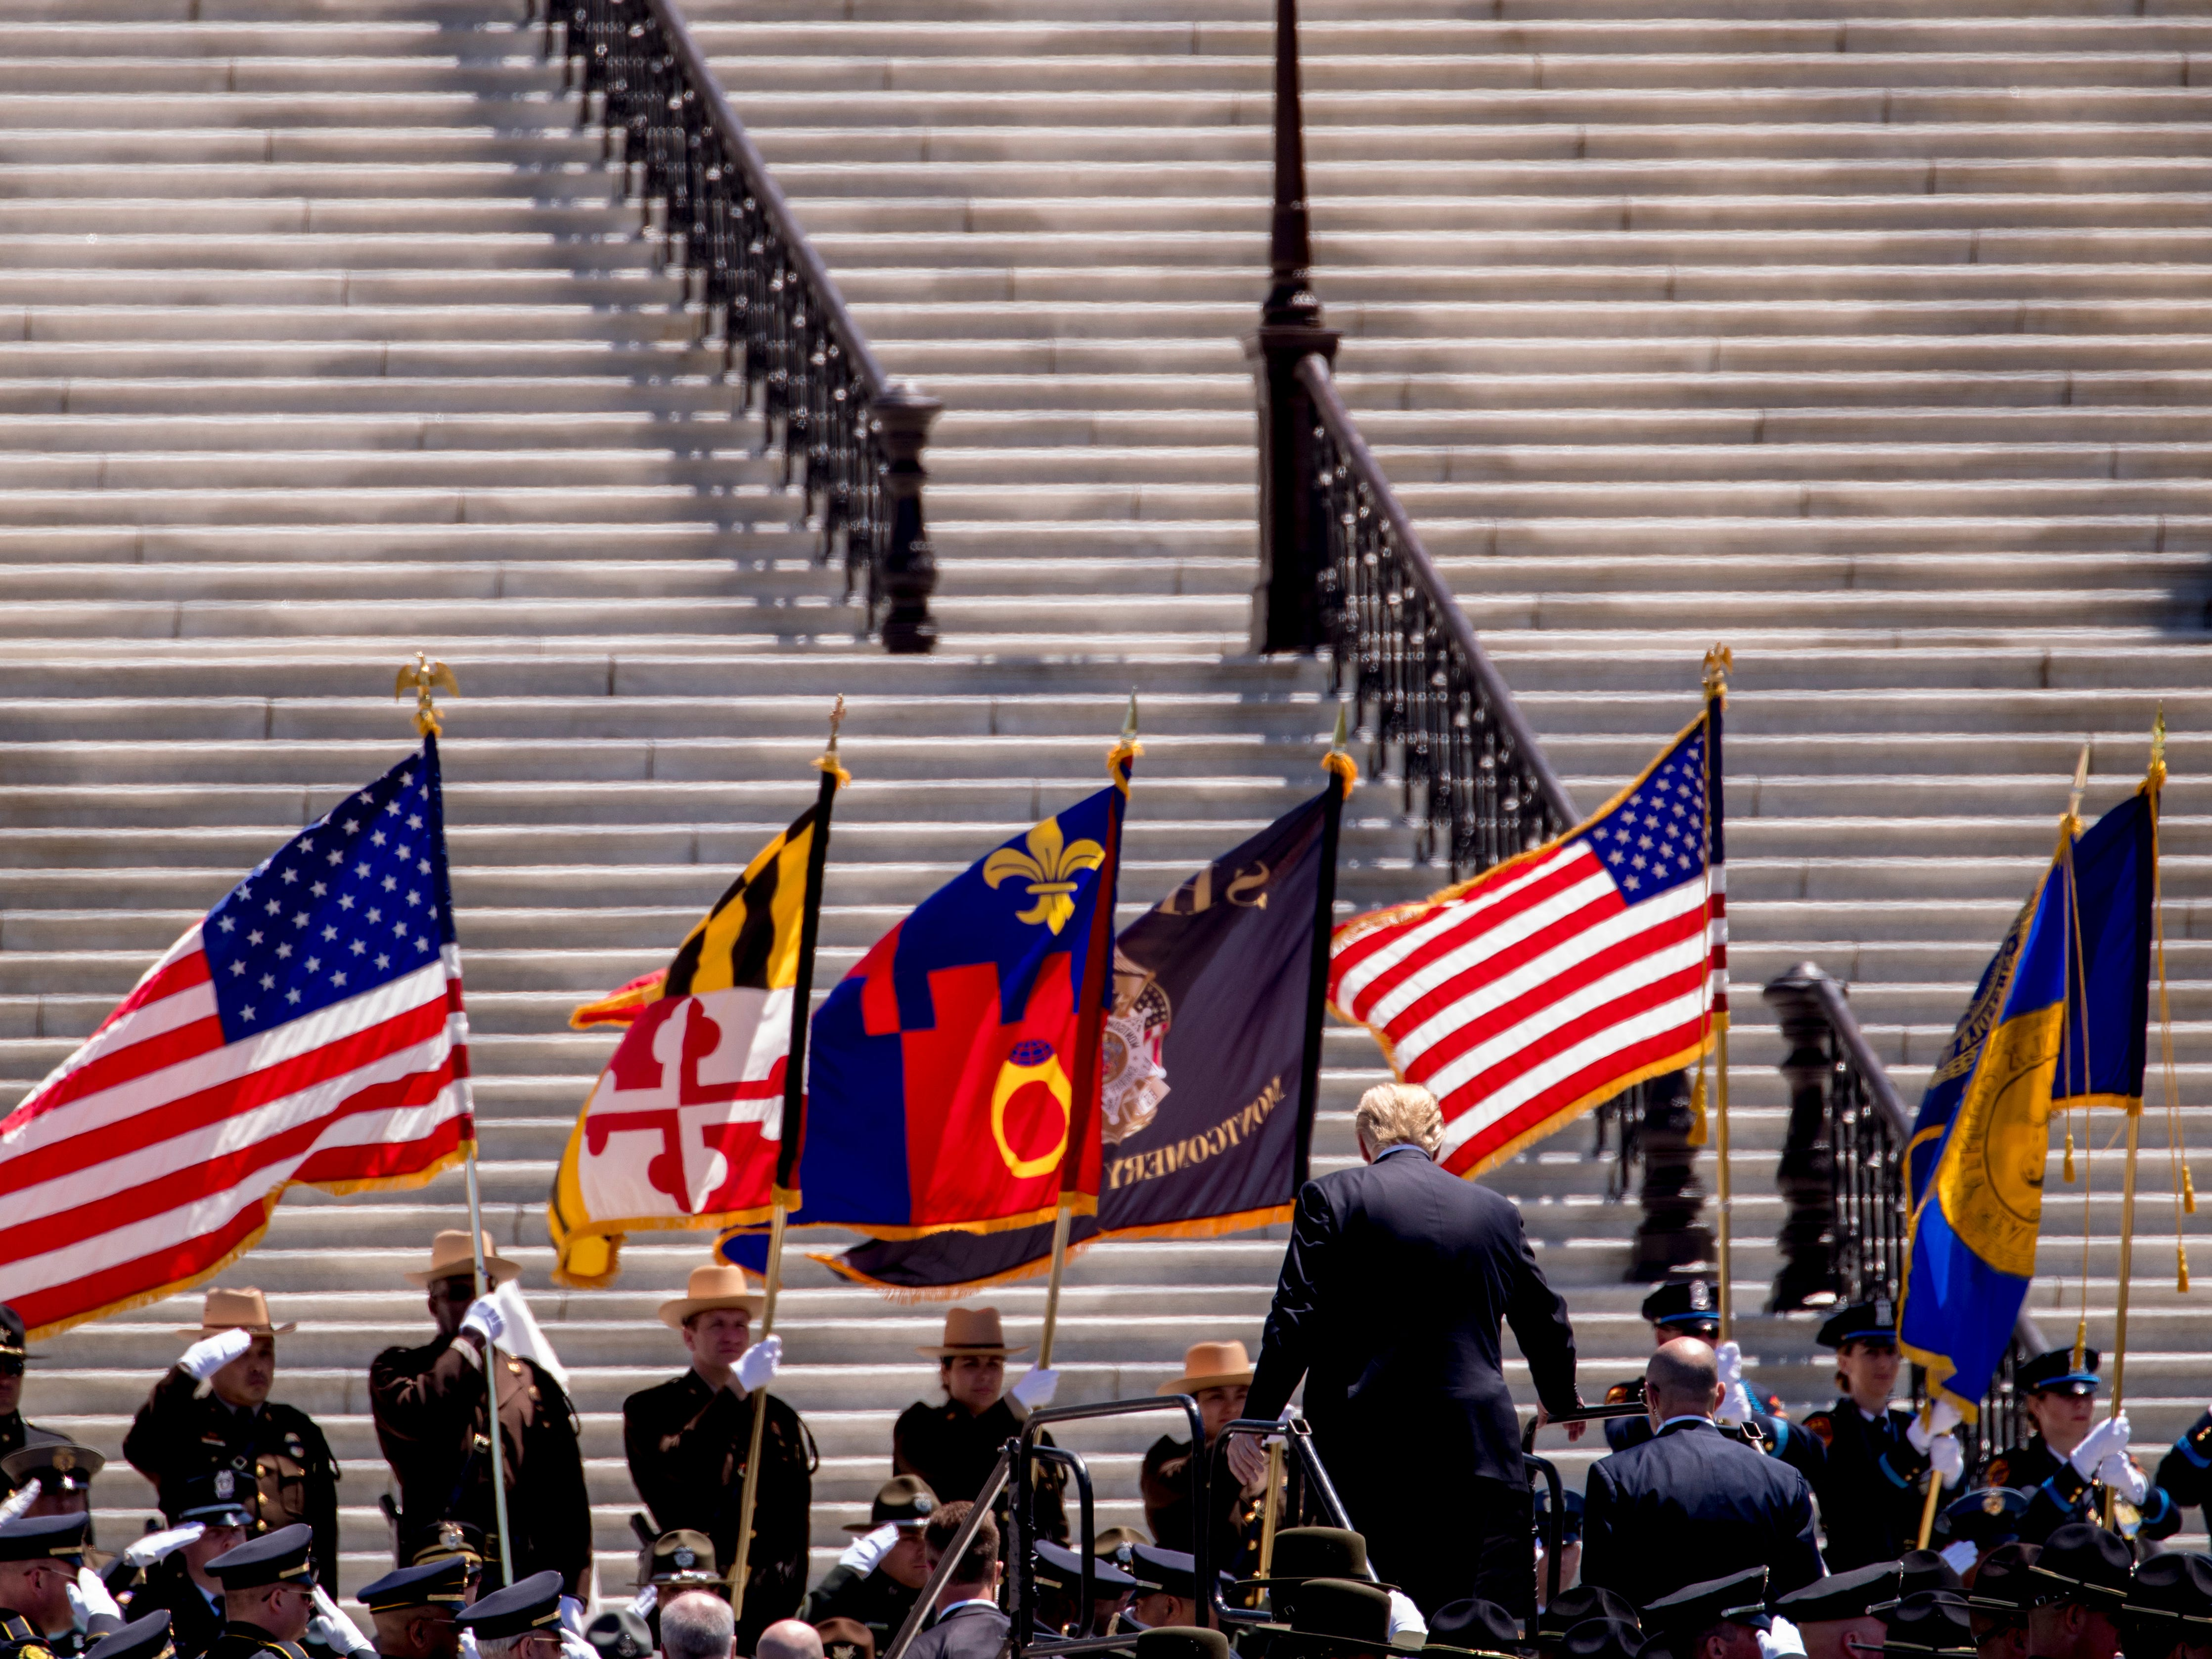 President Donald Trump departs after speaking at the 38th Annual National Peace Officers Memorial Service on the West Lawn of the Capitol Building, Wednesday, May 15, 2019, in Washington.